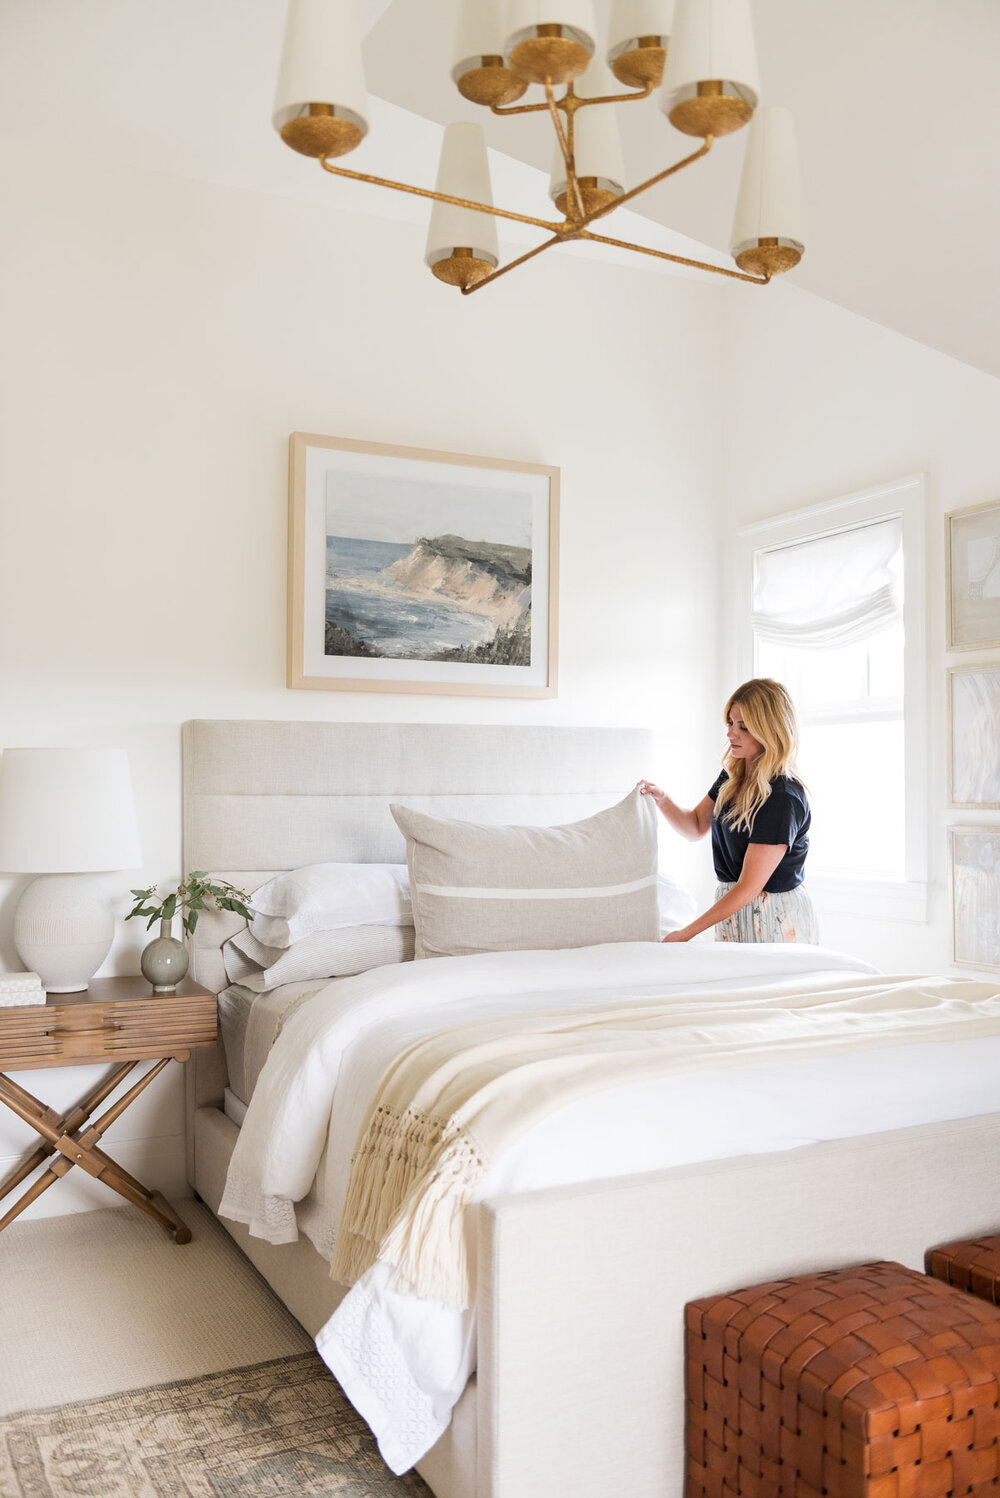 Love this channeled bed! One of my favorite 2020 decorating trends!